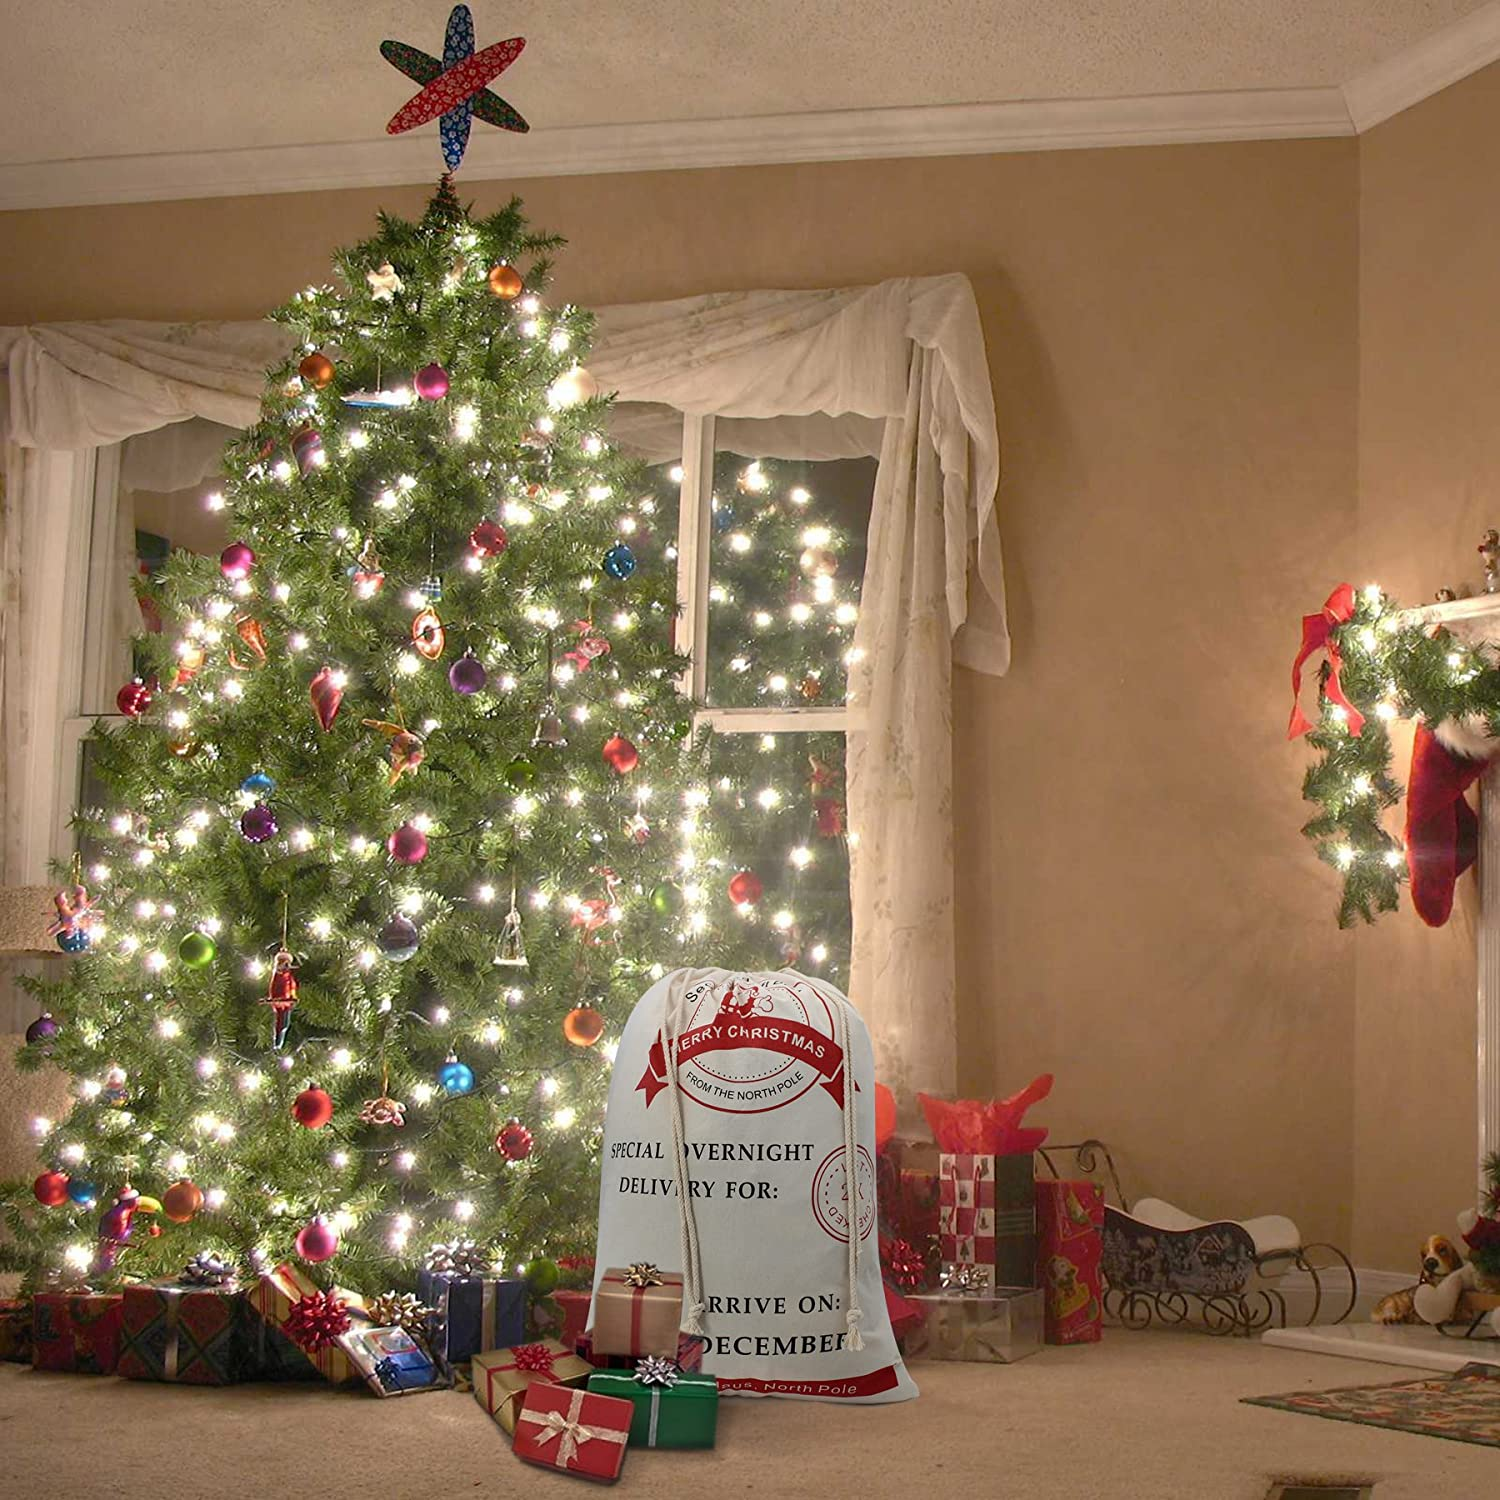 Amazon.com: Christmas Sack Reindeer Delivery Present Bags From North ...